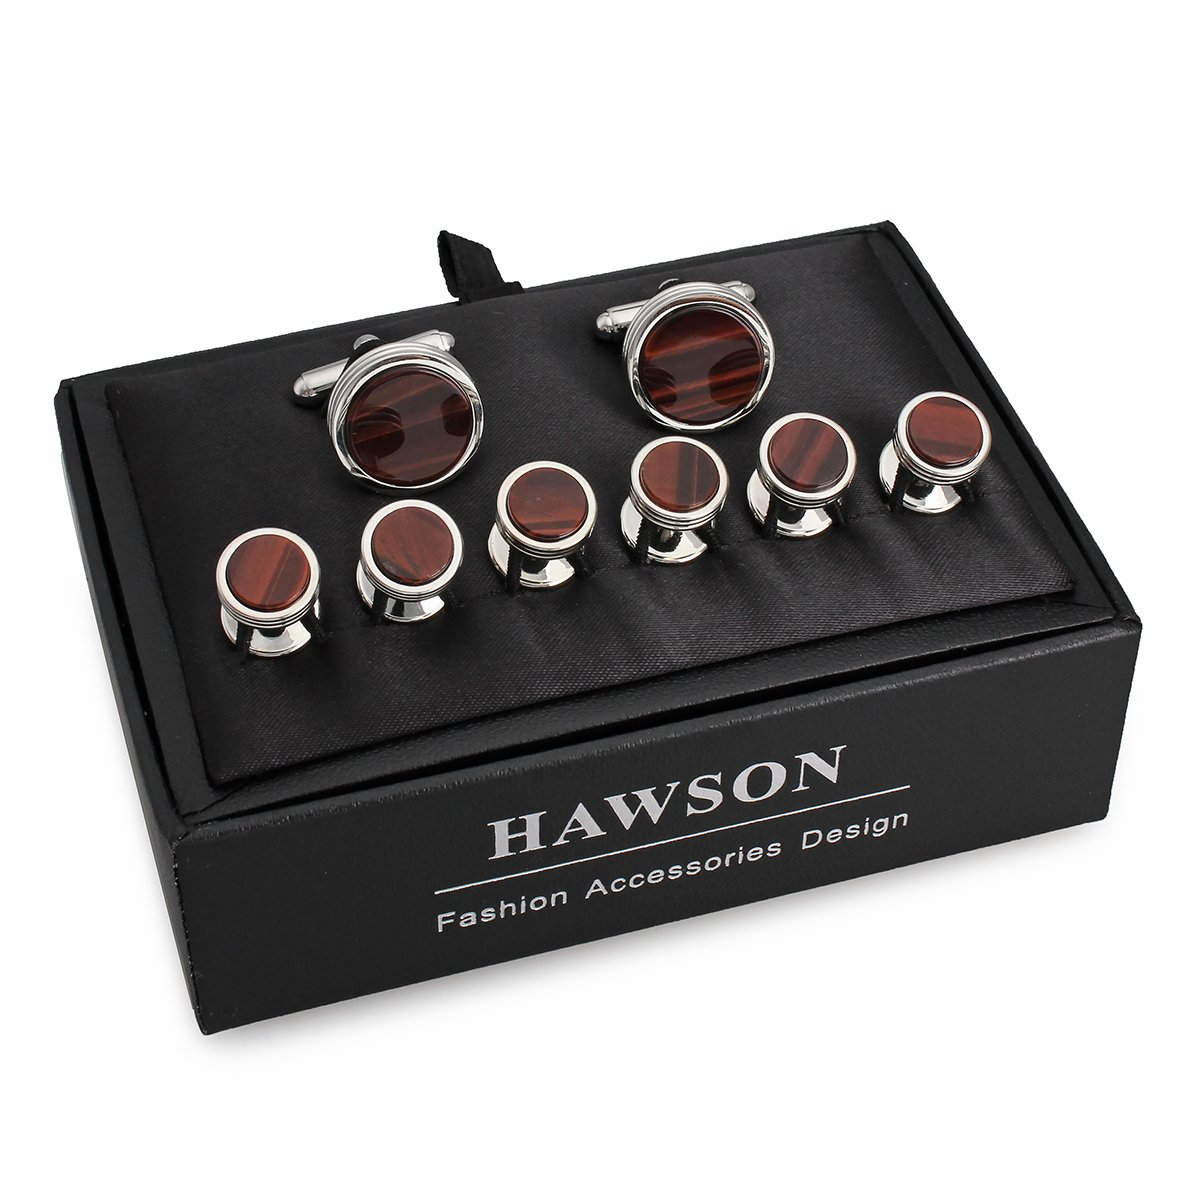 HAWSON Mens Cufflinks Studs Set Tuxedo Shirt Burgundy Mother Pearl Tuxedo Studs Wedding Business Daily Life Come a Gift Box by HAWSON